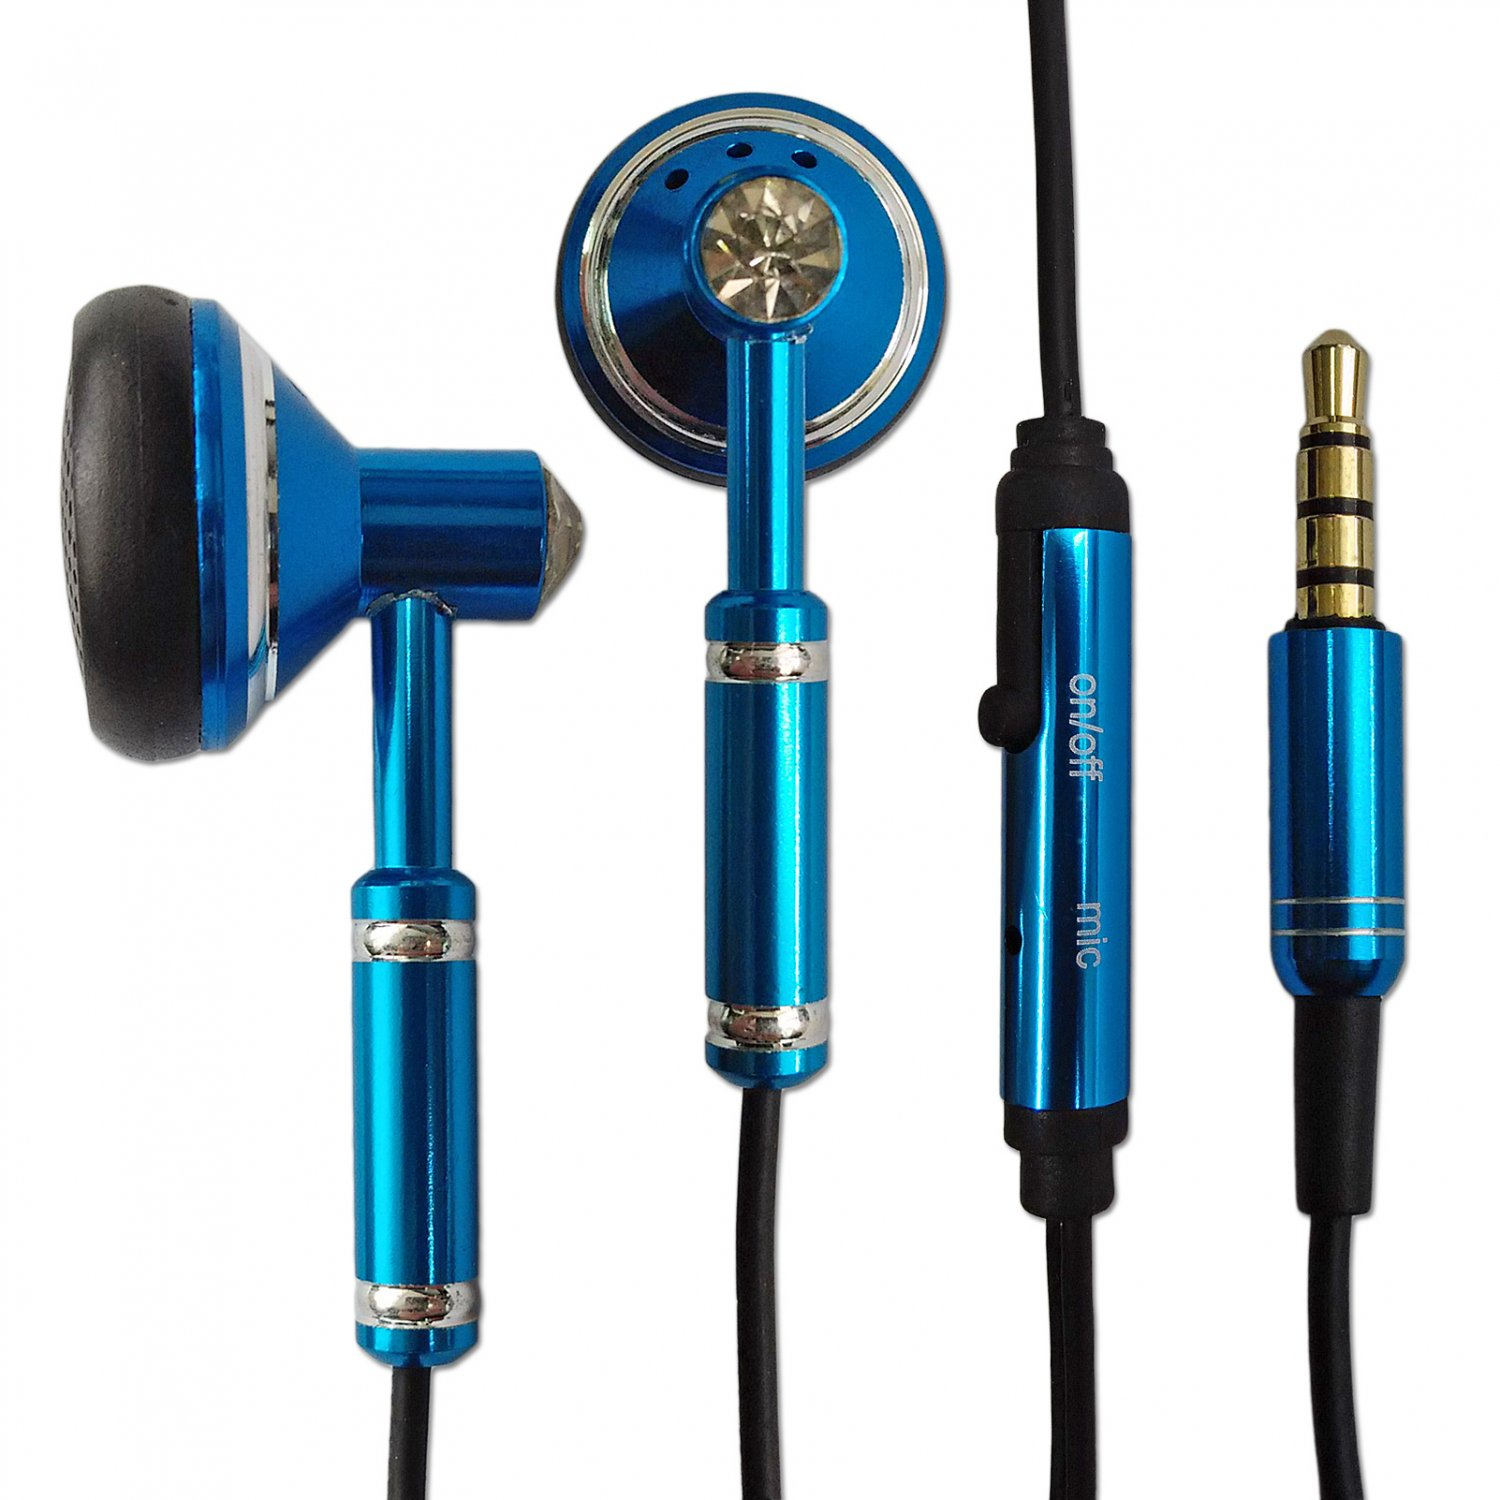 Earbuds 3 button mic - earbuds with mic metal